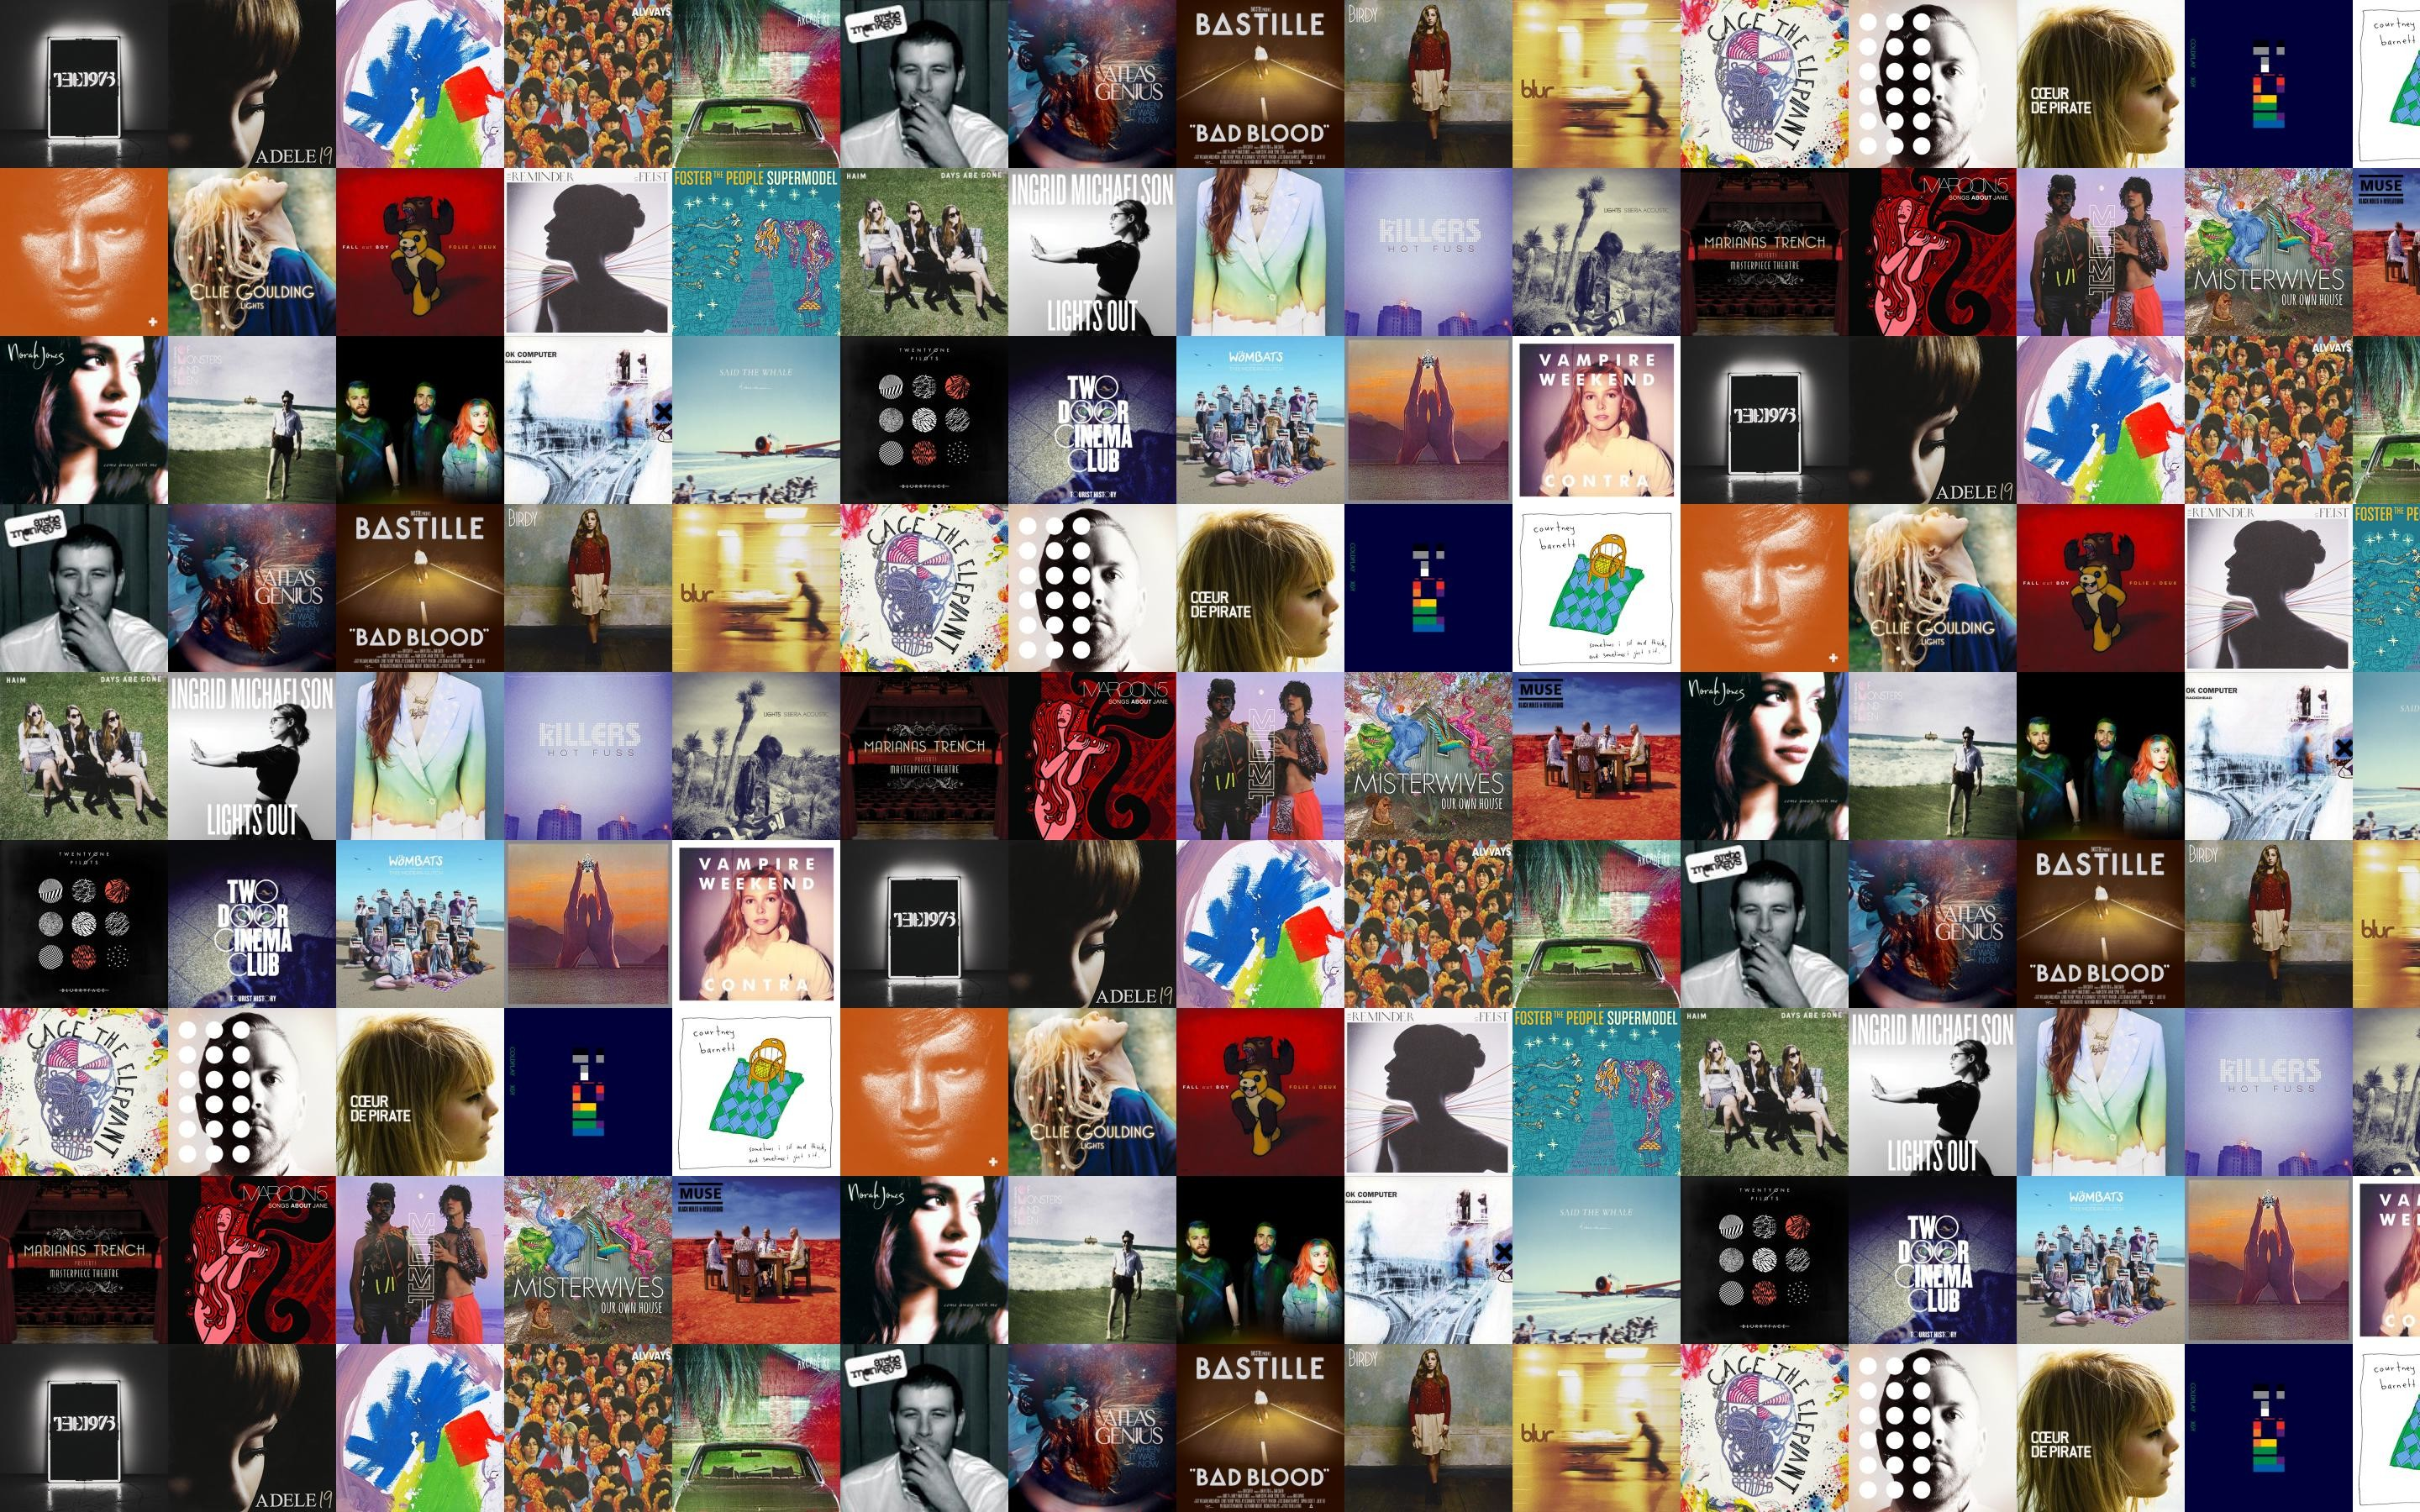 The 1975 The 1975 Adele 19 Alt-J This Wallpaper